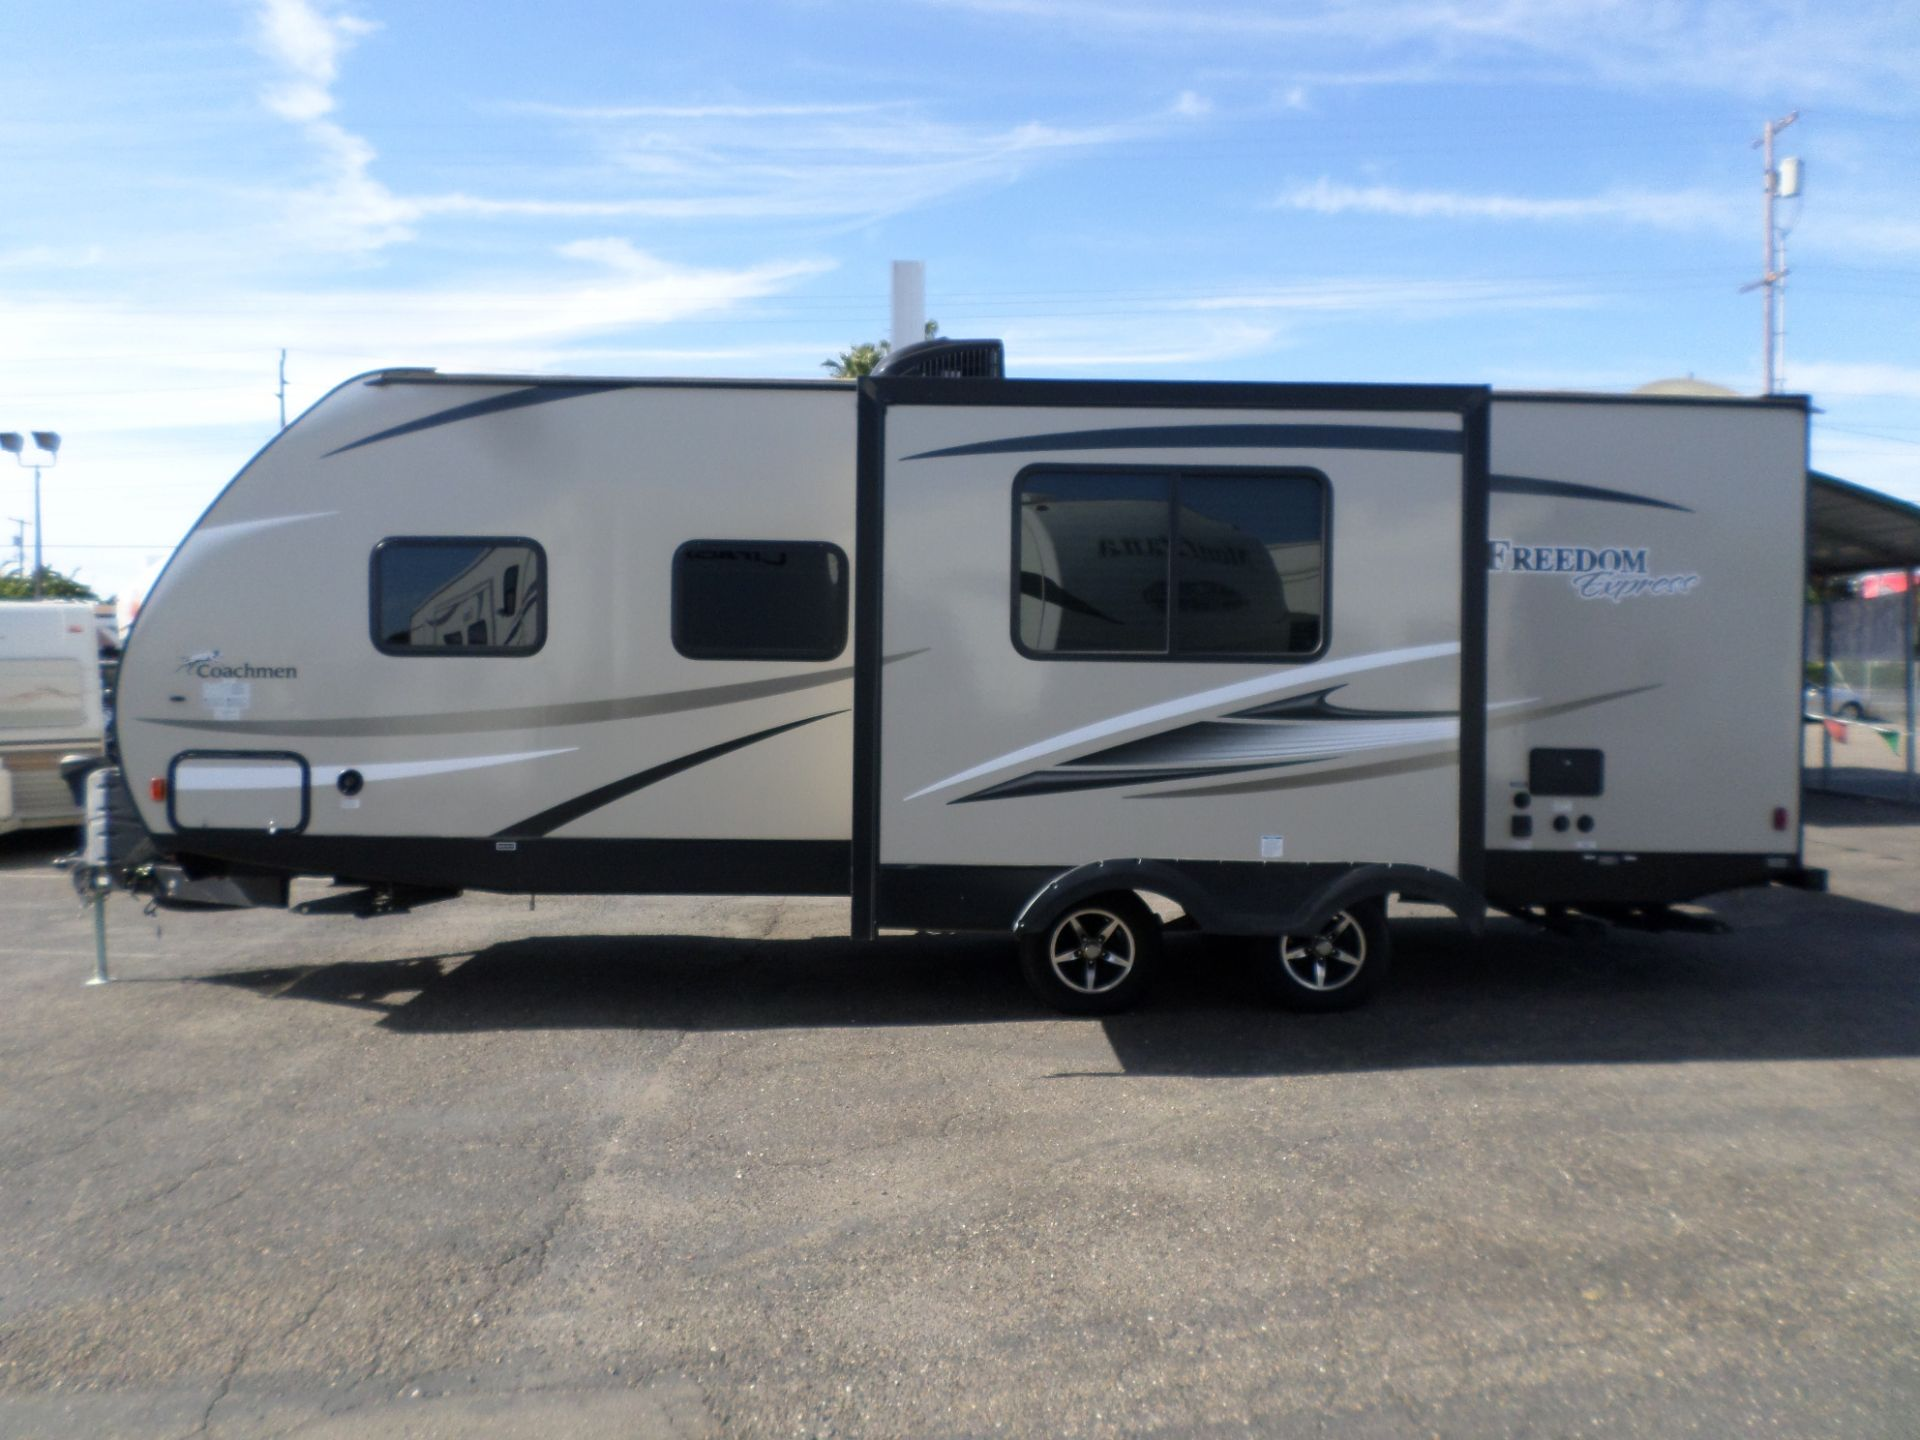 Rv For Sale 2017 Coachmen Freedom Express 248rbs 30 In Lodi Stockton Ca Rv For Sale Used Rv For Sale Used Trucks For Sale